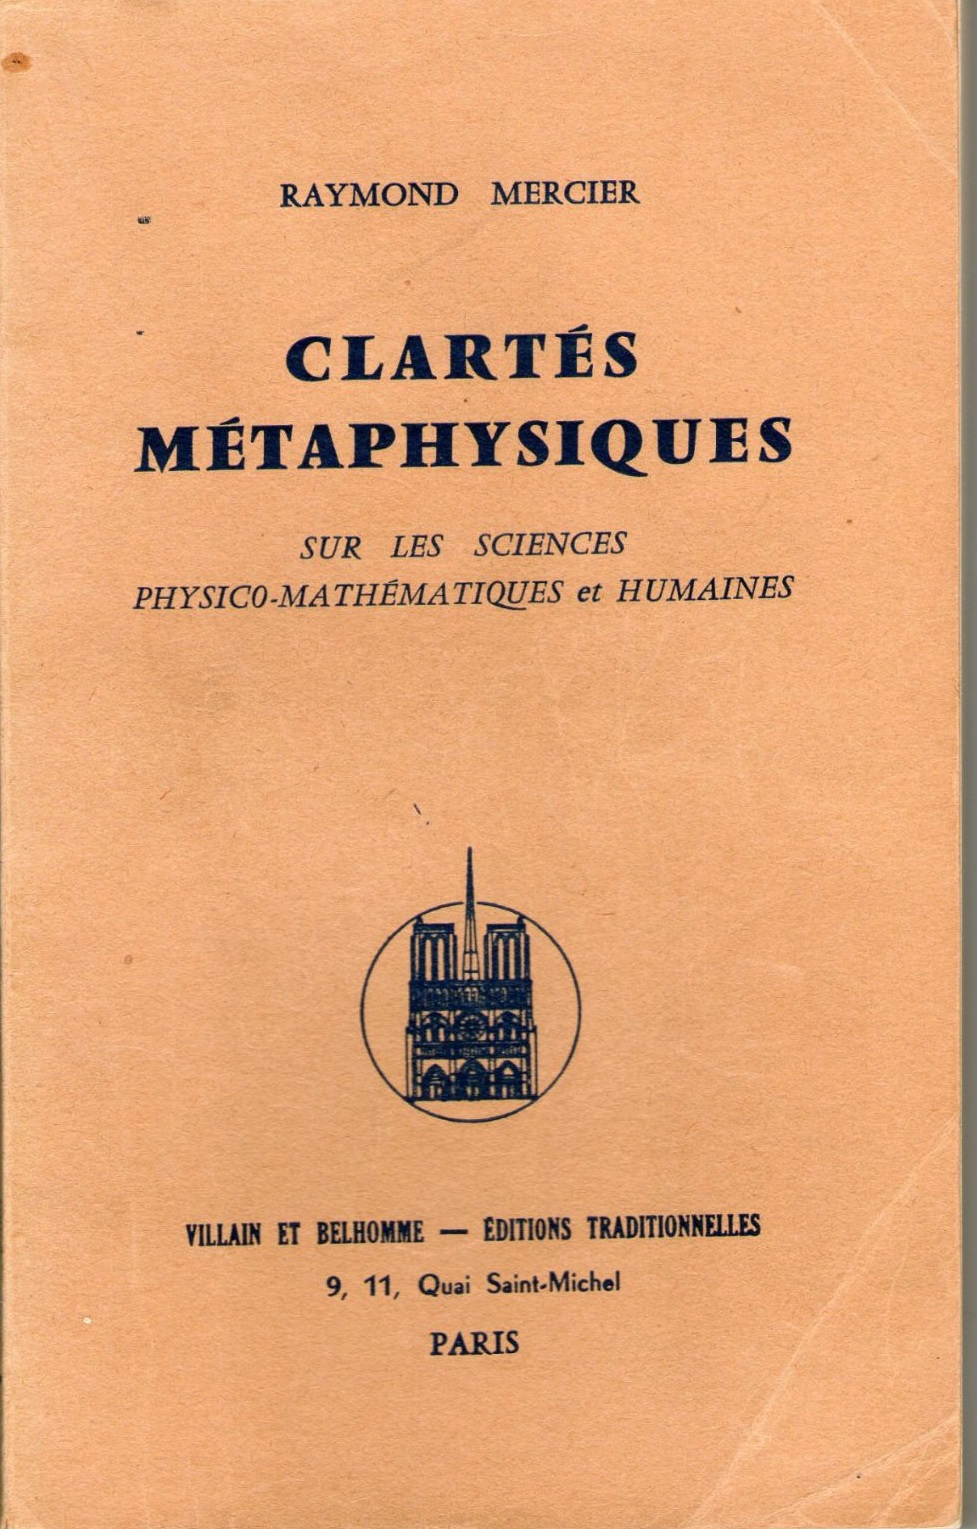 Raymond Mercier - Clartés Métaphysiques Sur Les Sciences Physico-Mathématiques et Humaines